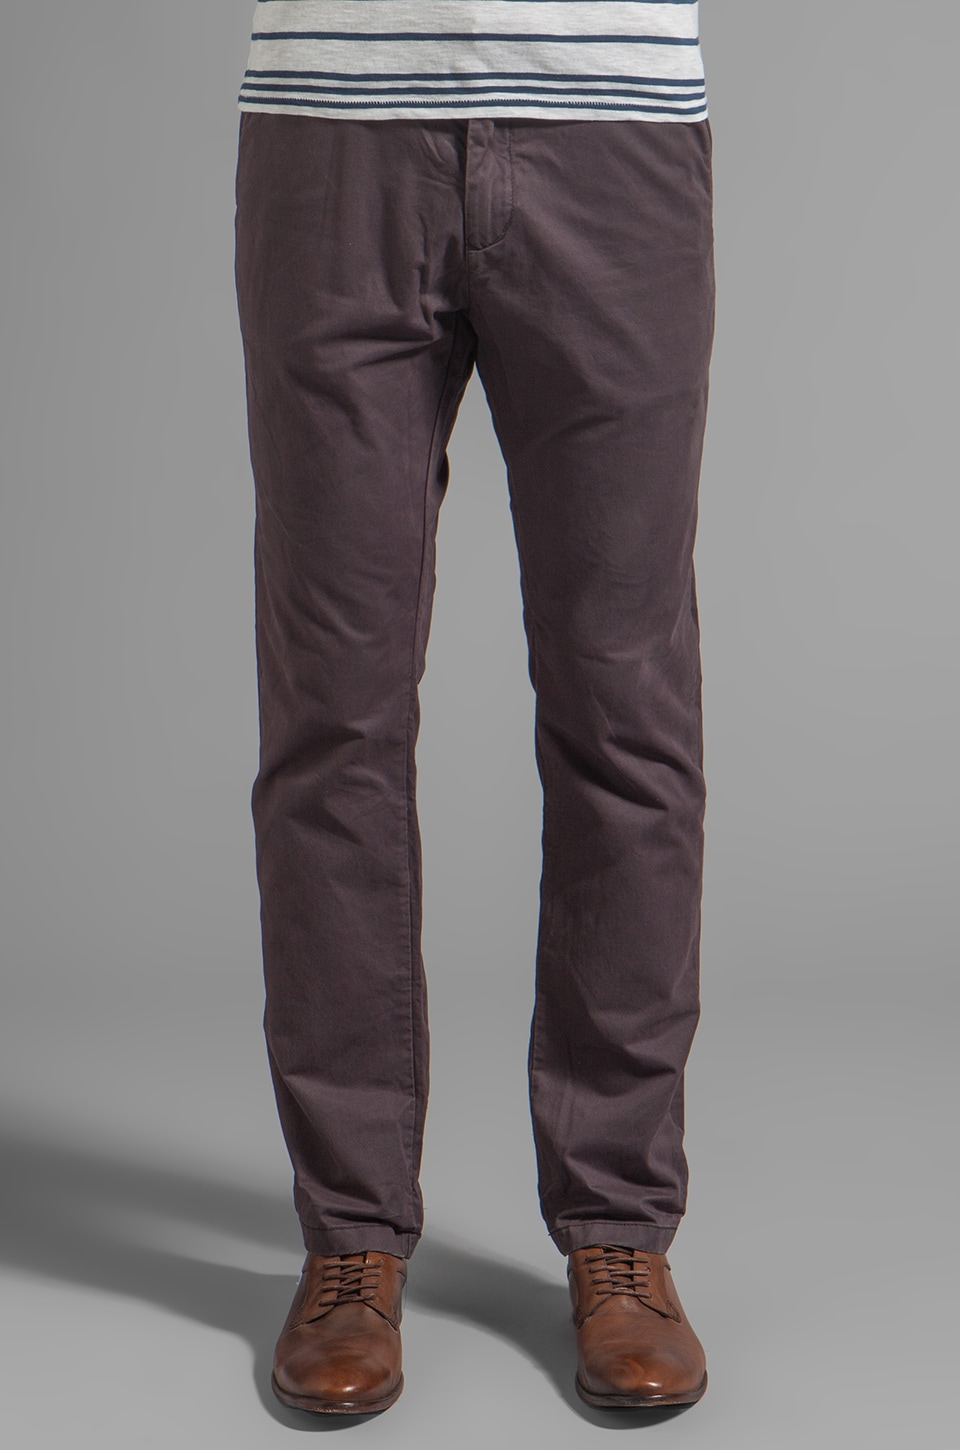 Scotch & Soda Twill Chino in Tabacco